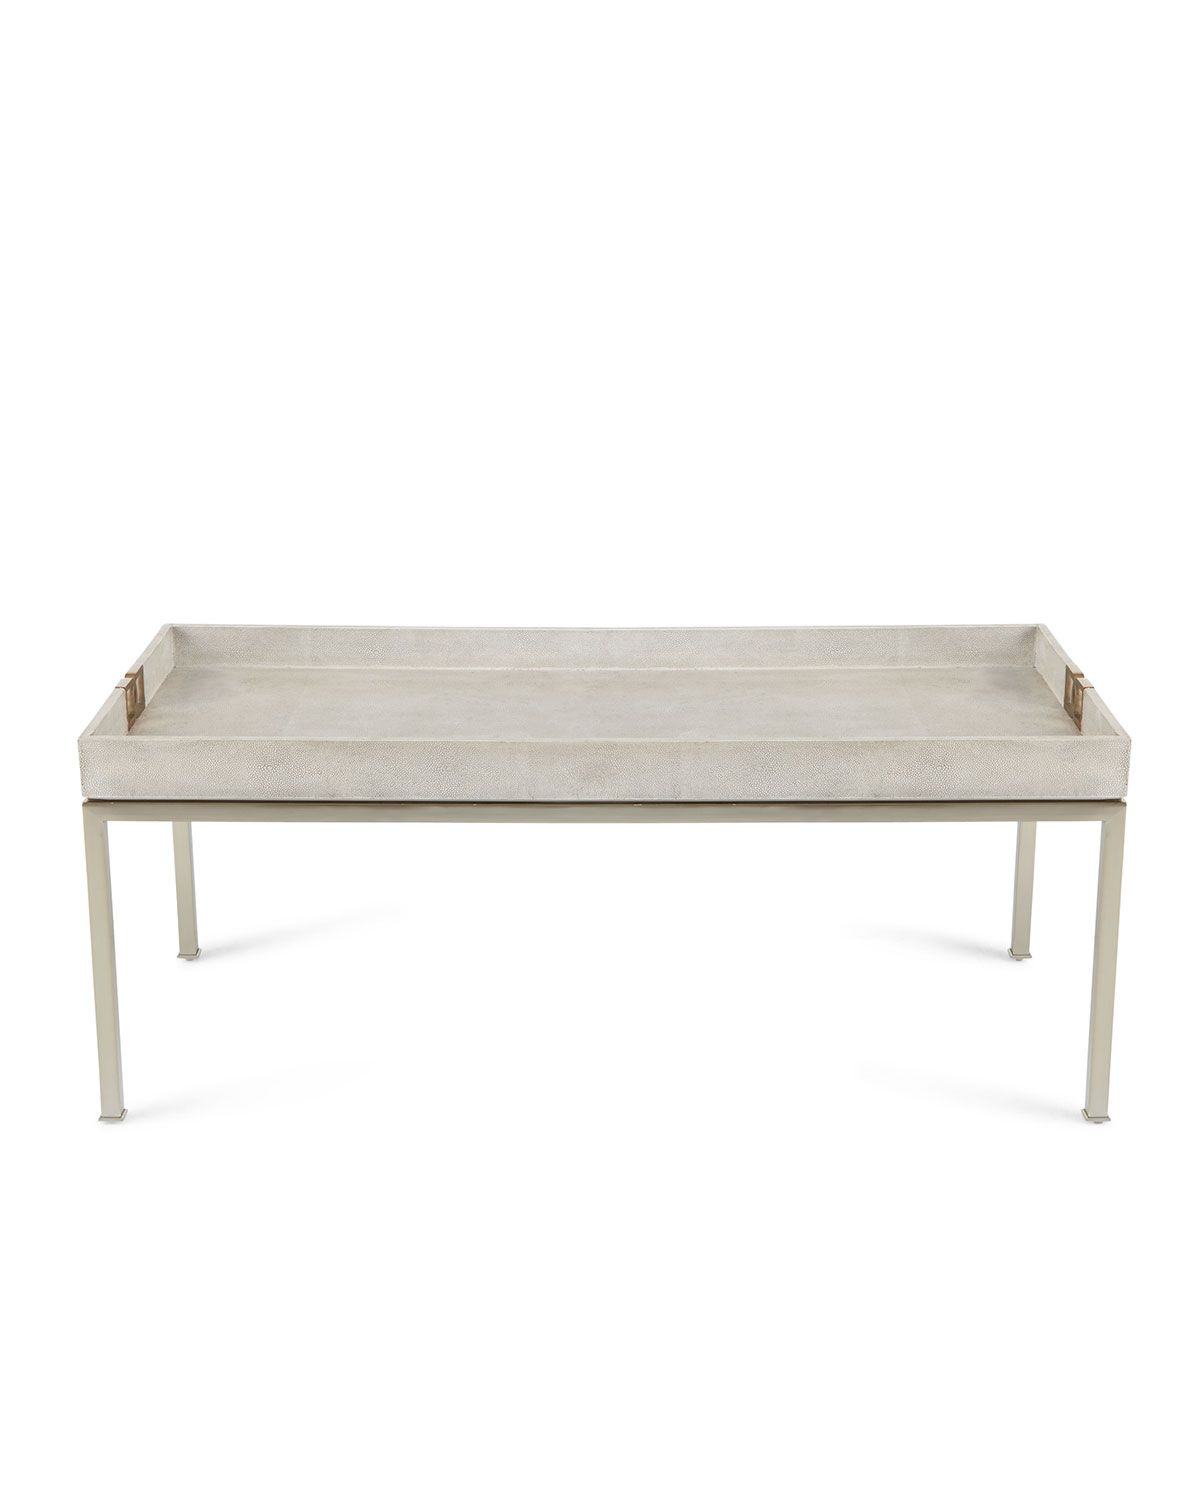 Bernhardt Stockhart Coffee Table Mirrored Coffee Tables Marble